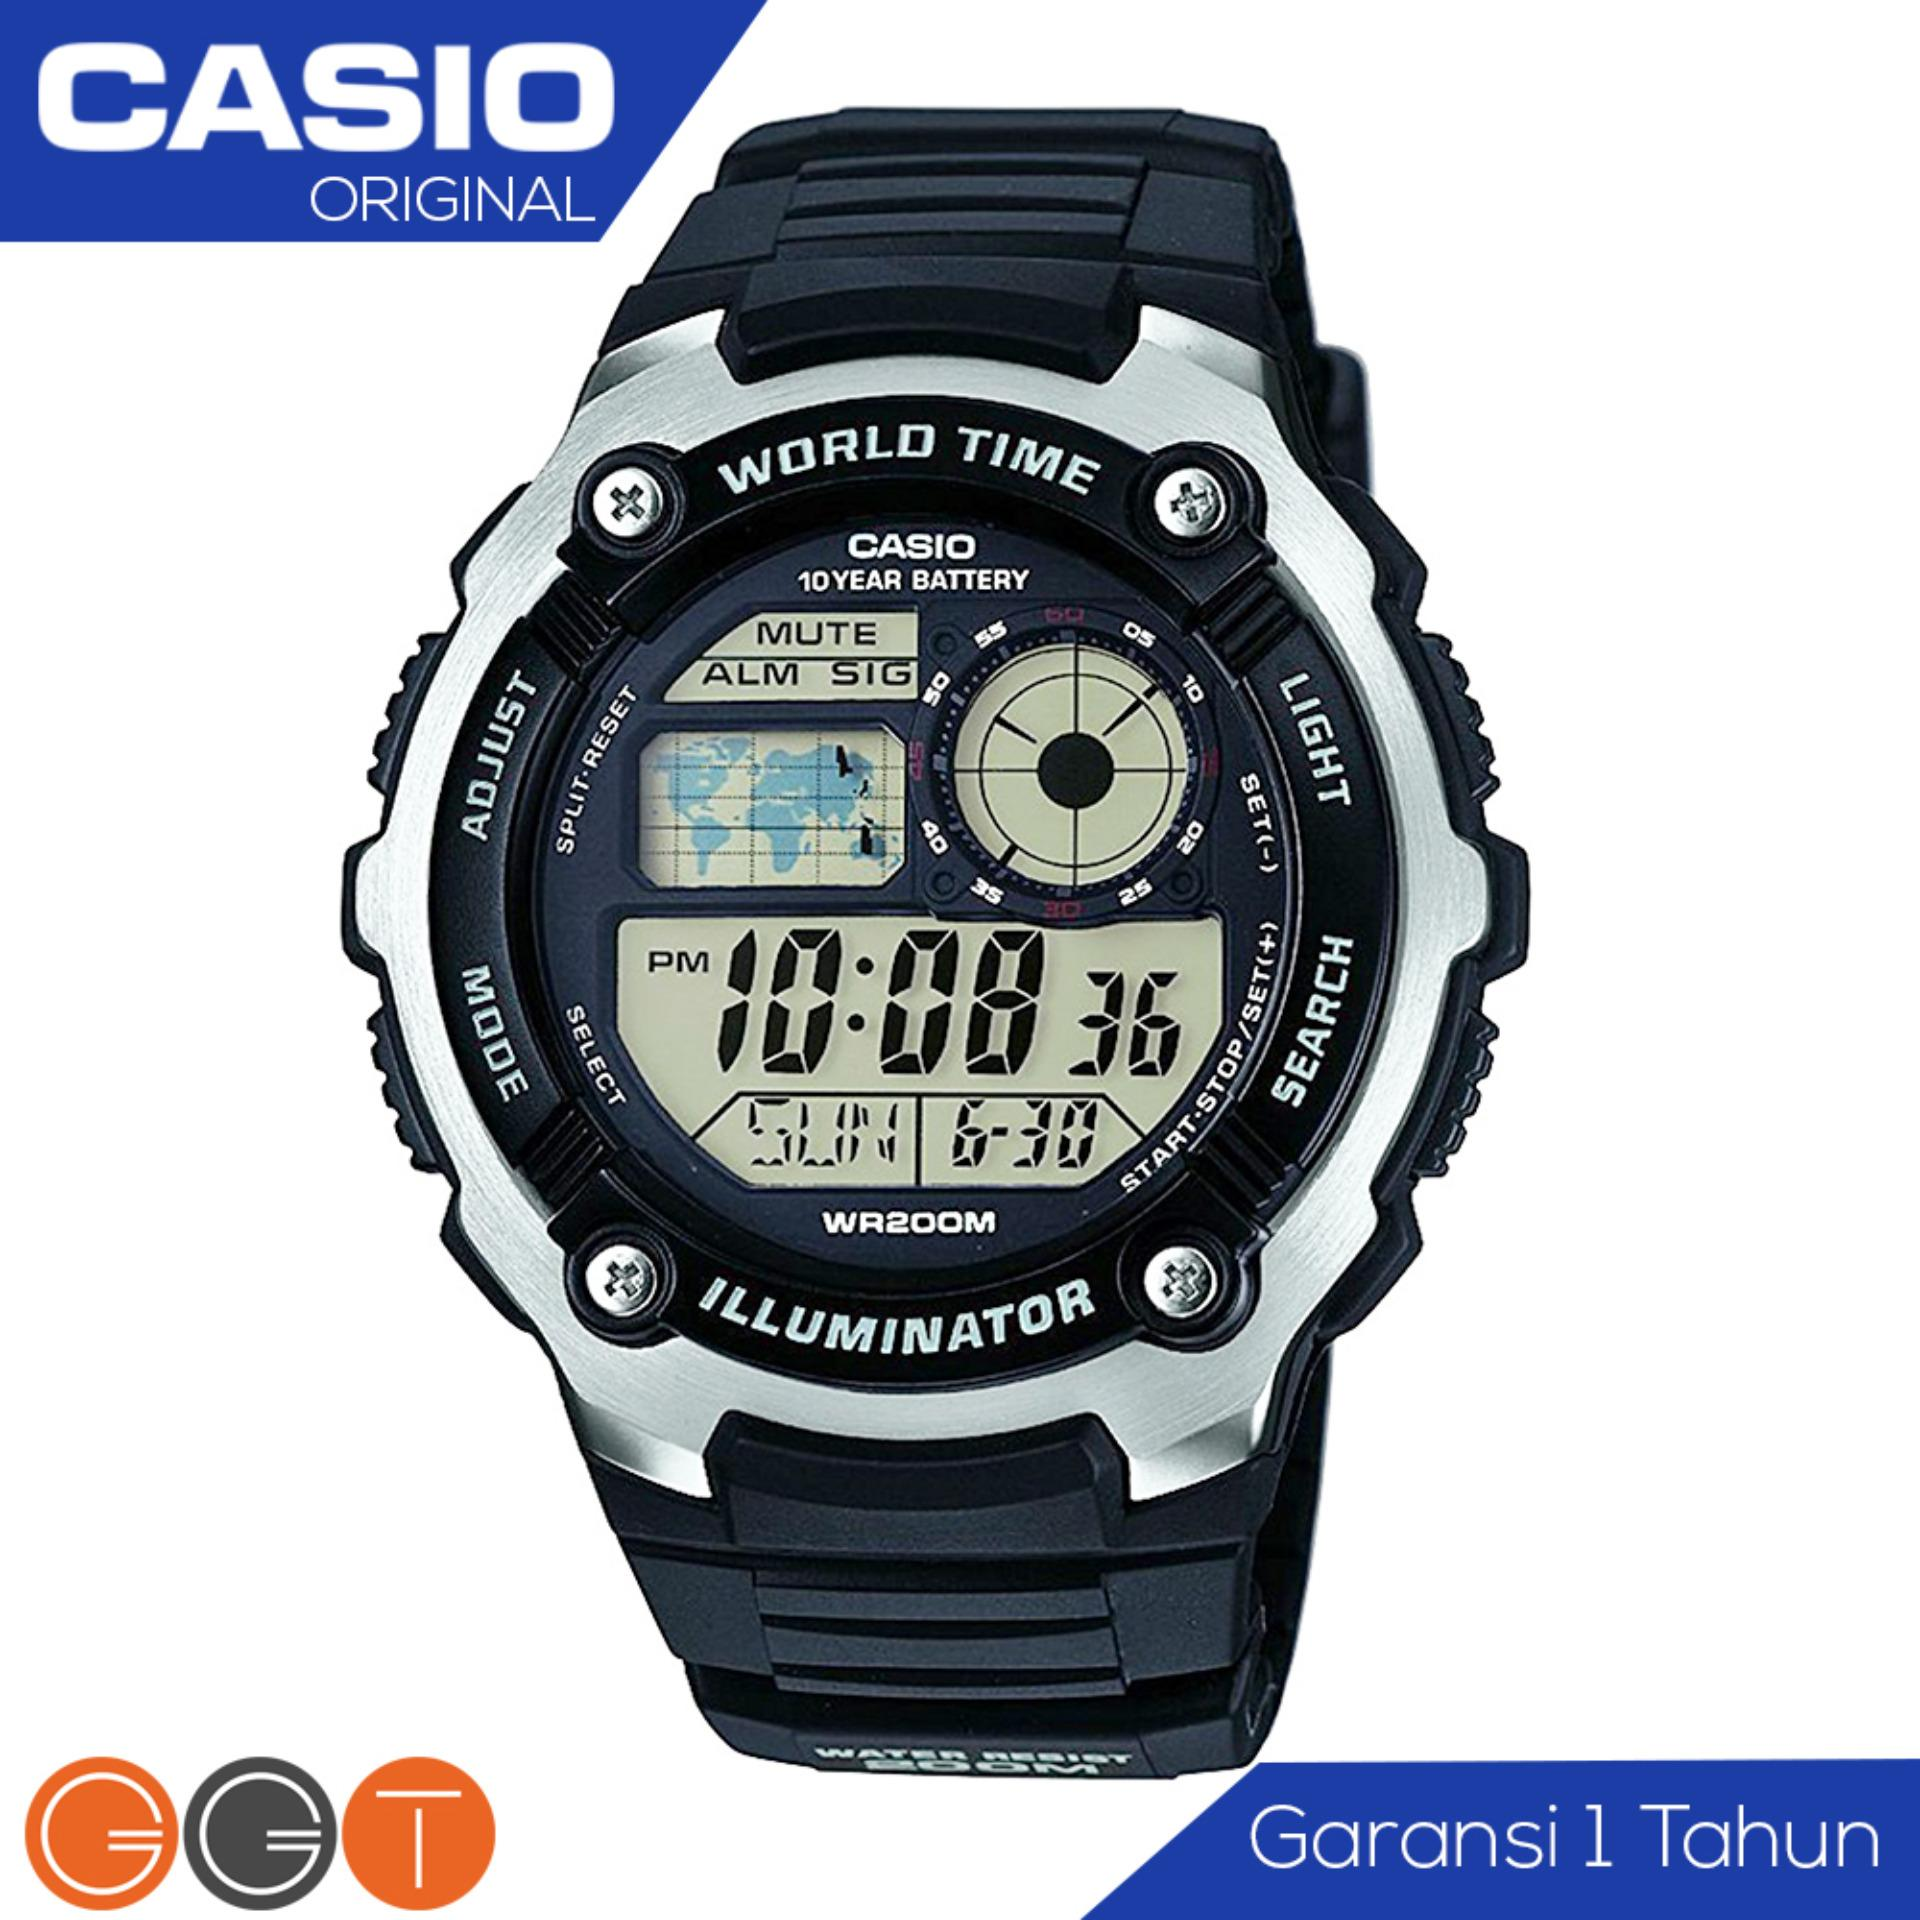 CASIO Illuminator AE-2100W-1AVDF - Jam Tangan Pria - Resin Strap - Digital Movement - Black